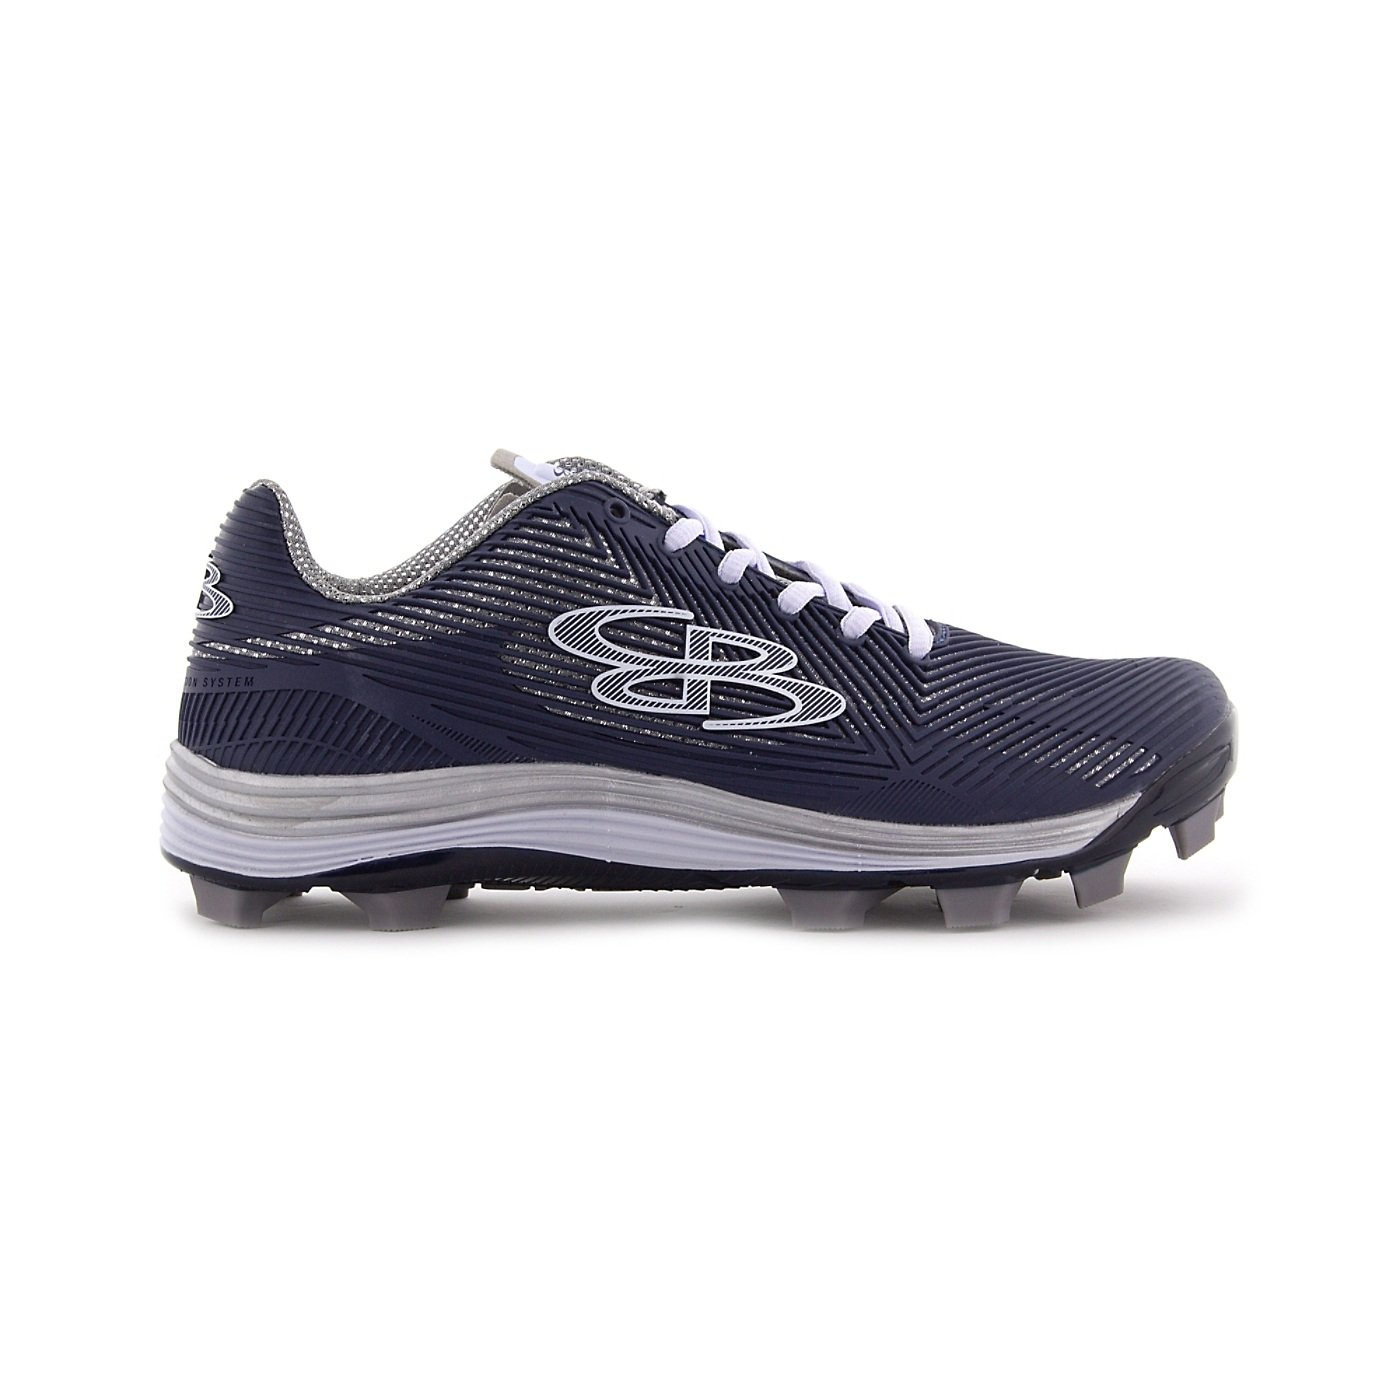 Boombah Women's Spotlight Molded Cleat Navy/Gray - Size 8 by Boombah